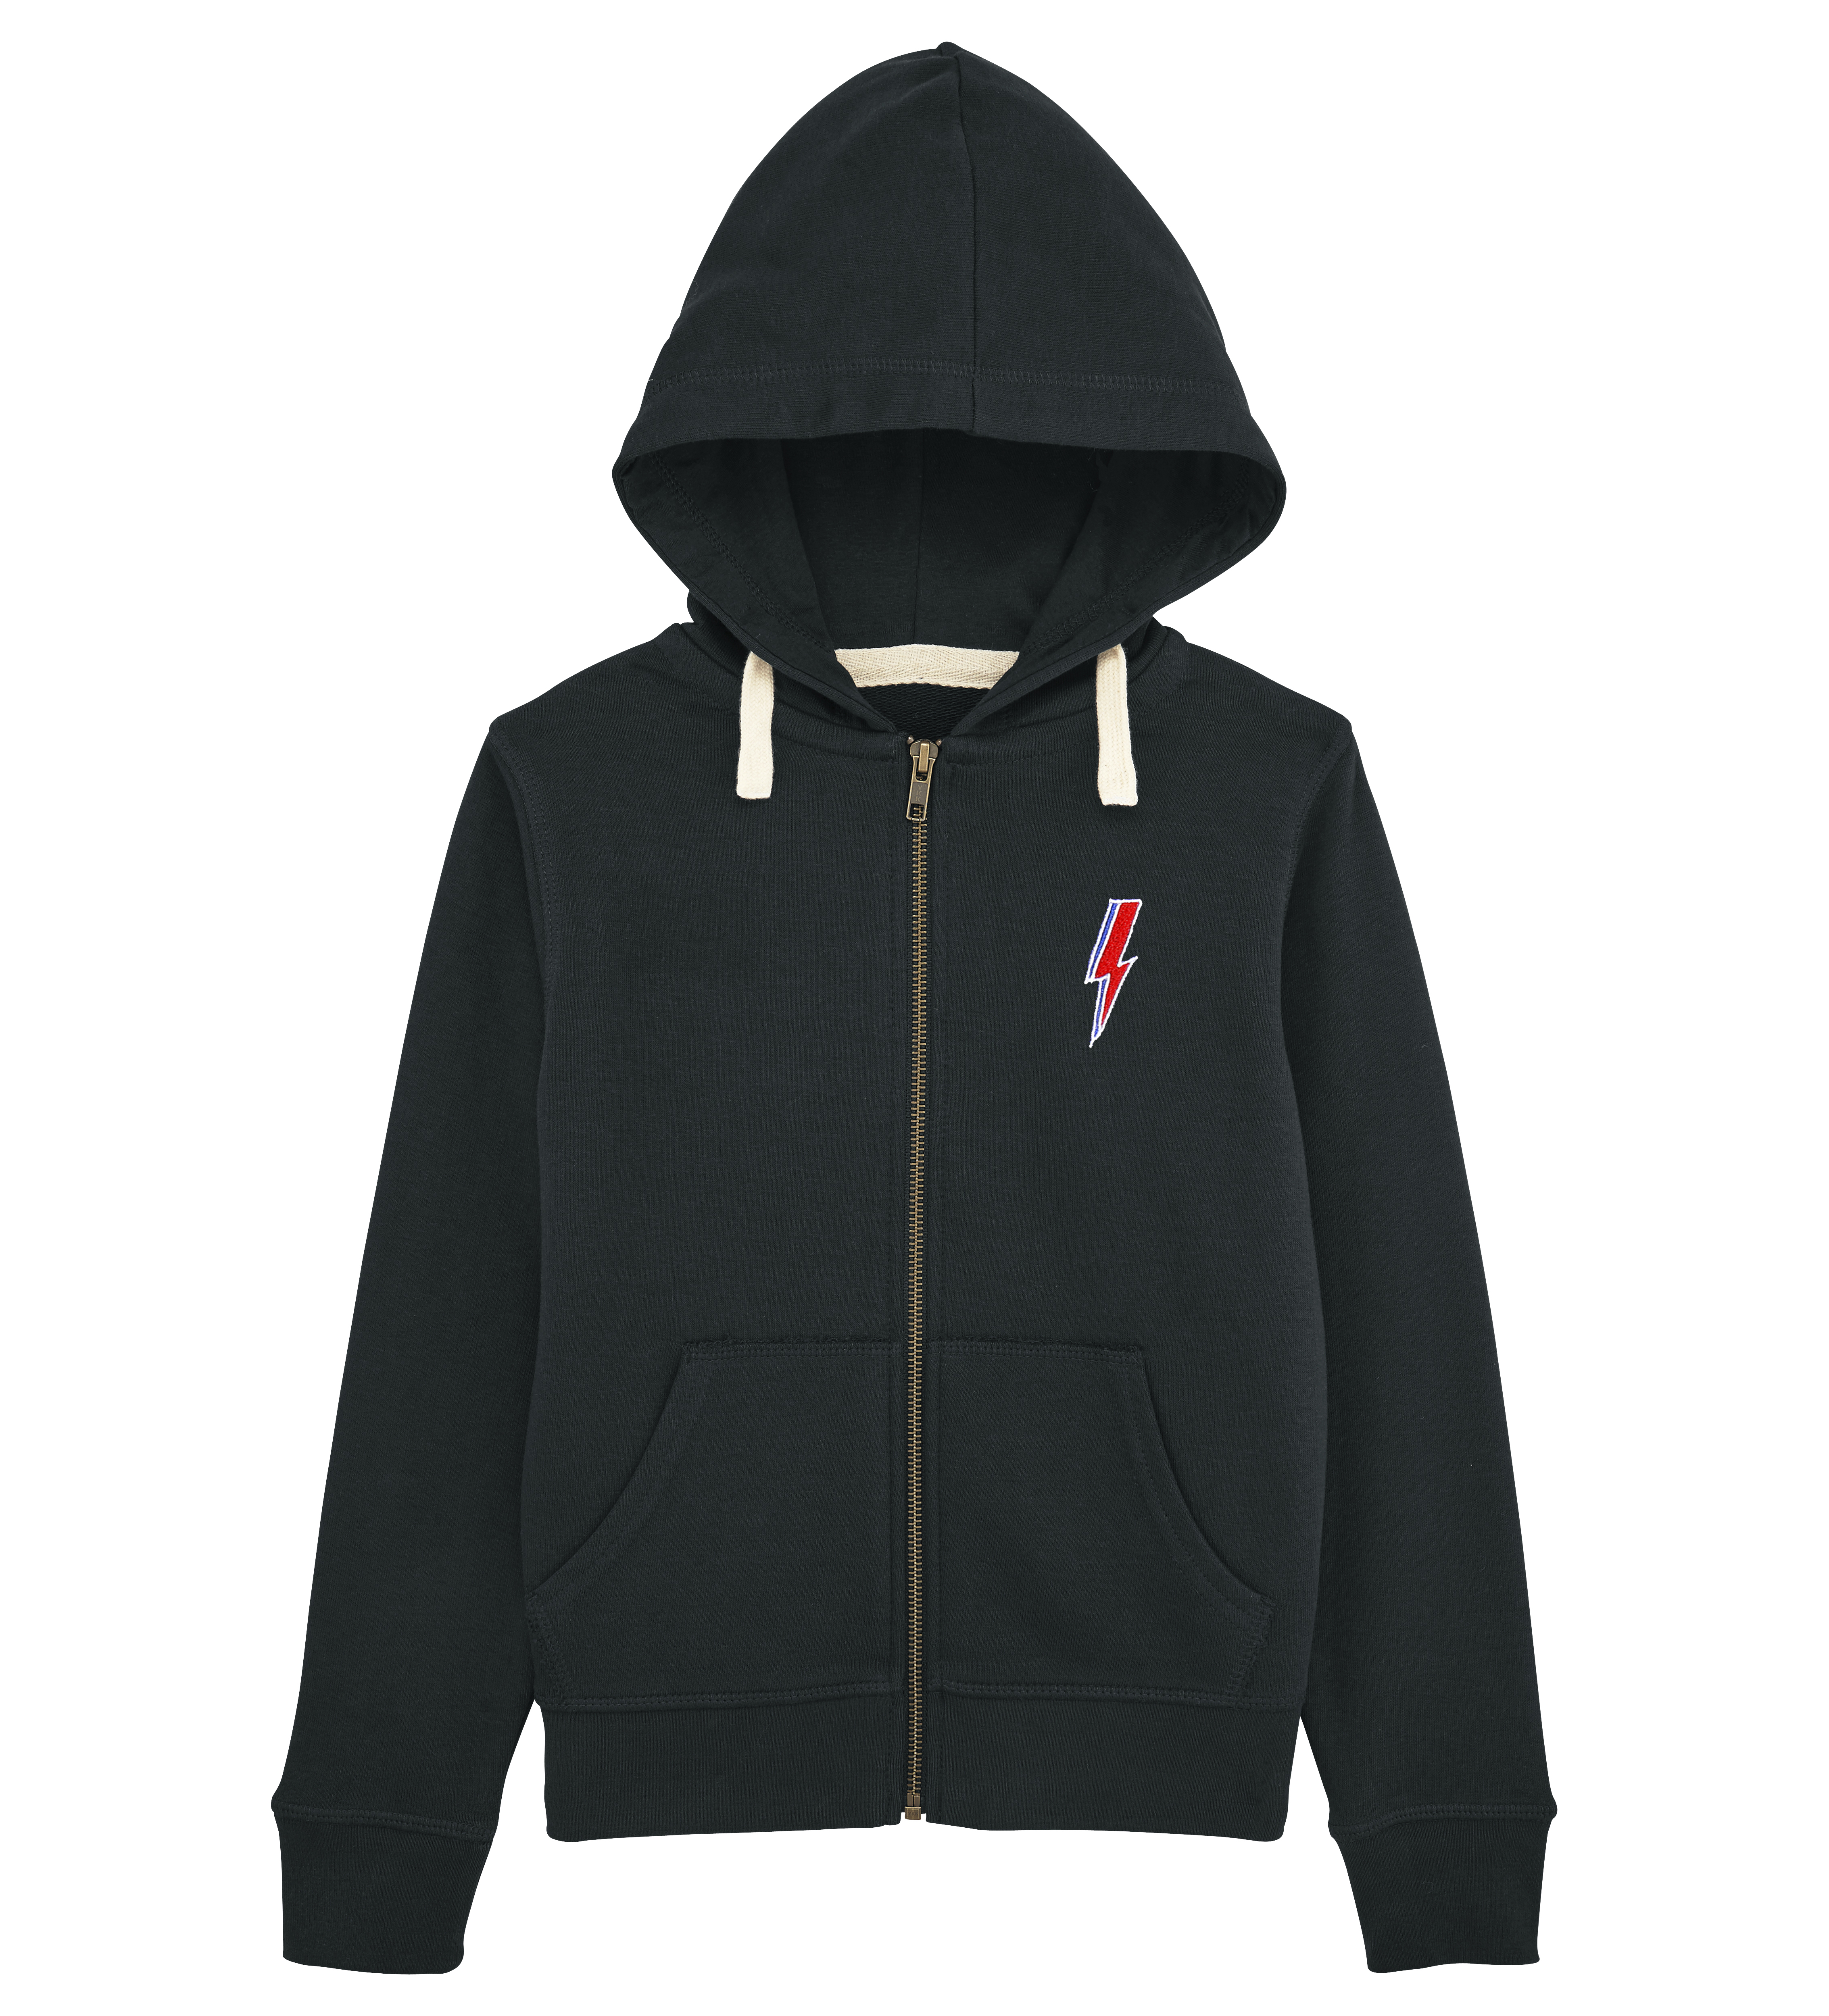 JUNIOR RAGS X DAVID BOWIE OFFICIAL ZIP THROUGH HOODED SWEATSHIRT BLACK ORGANIC COTTON